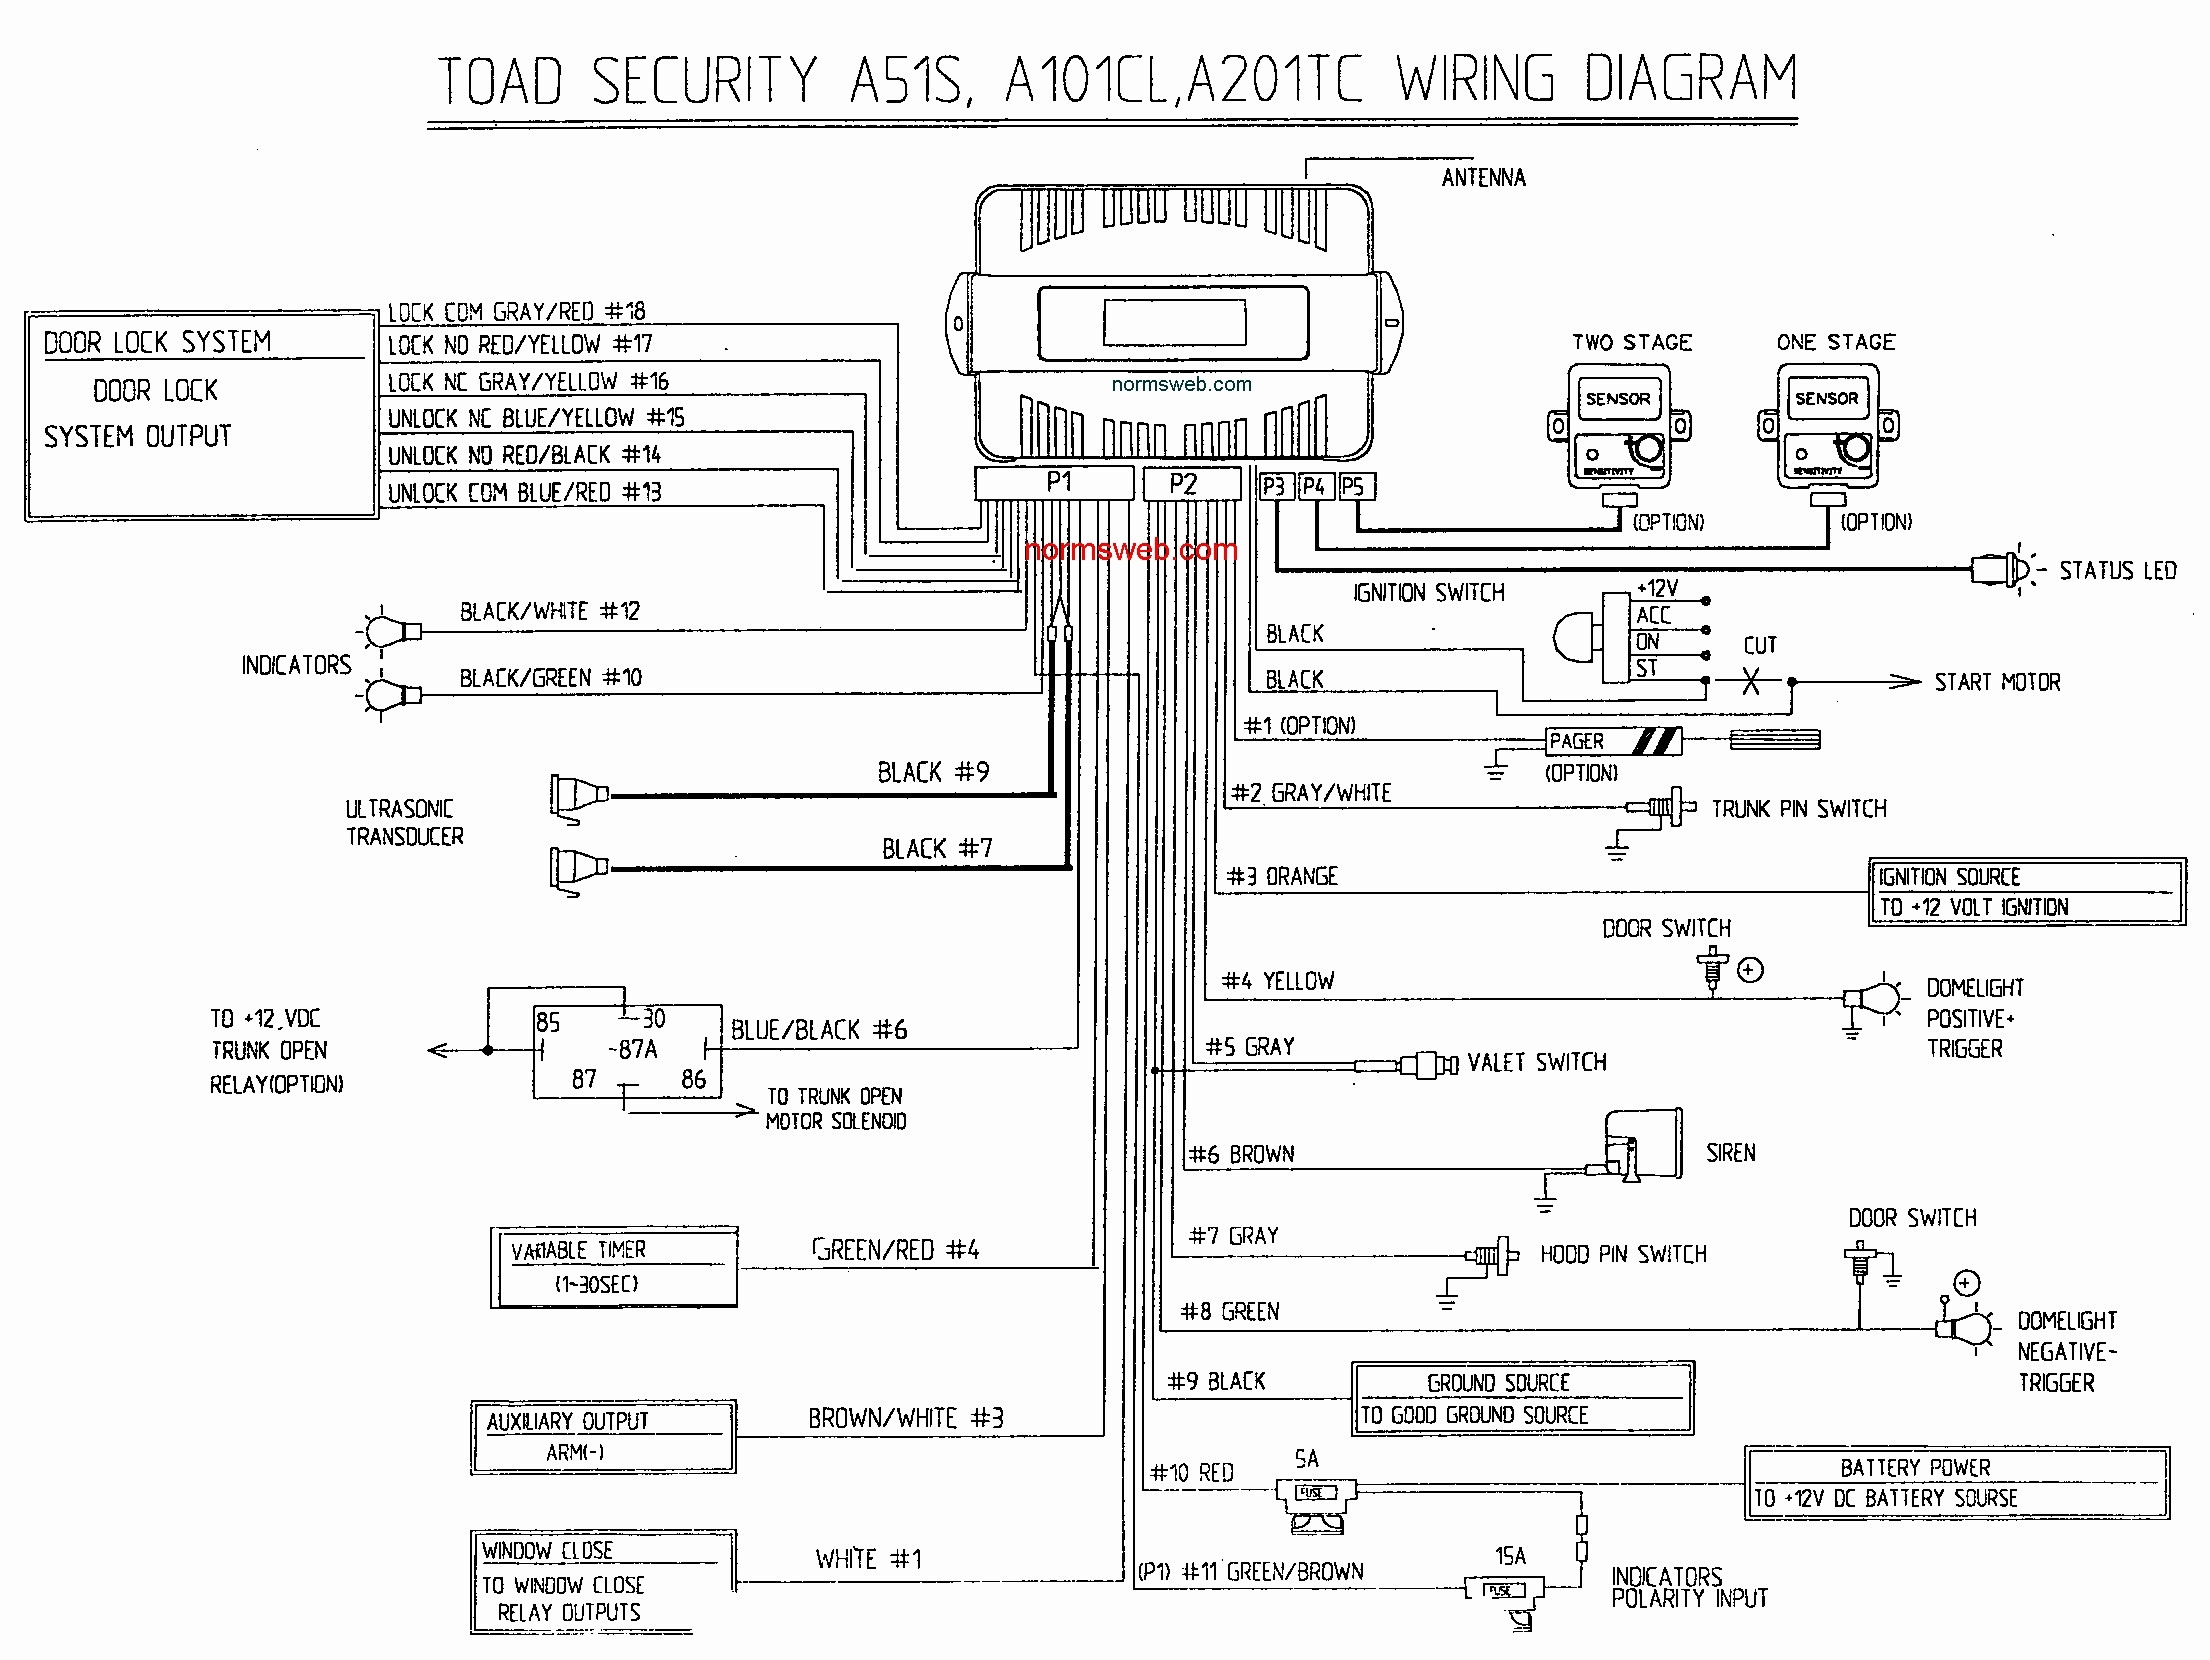 5404 viper car alarm systems wiring diagrams ogo hsm intl uk \u2022 viper car alarm system diagram viper alarm wiring diagram wiring diagram rh 41 unsere umzuege de car alarm parts list viper remote start wiring diagram